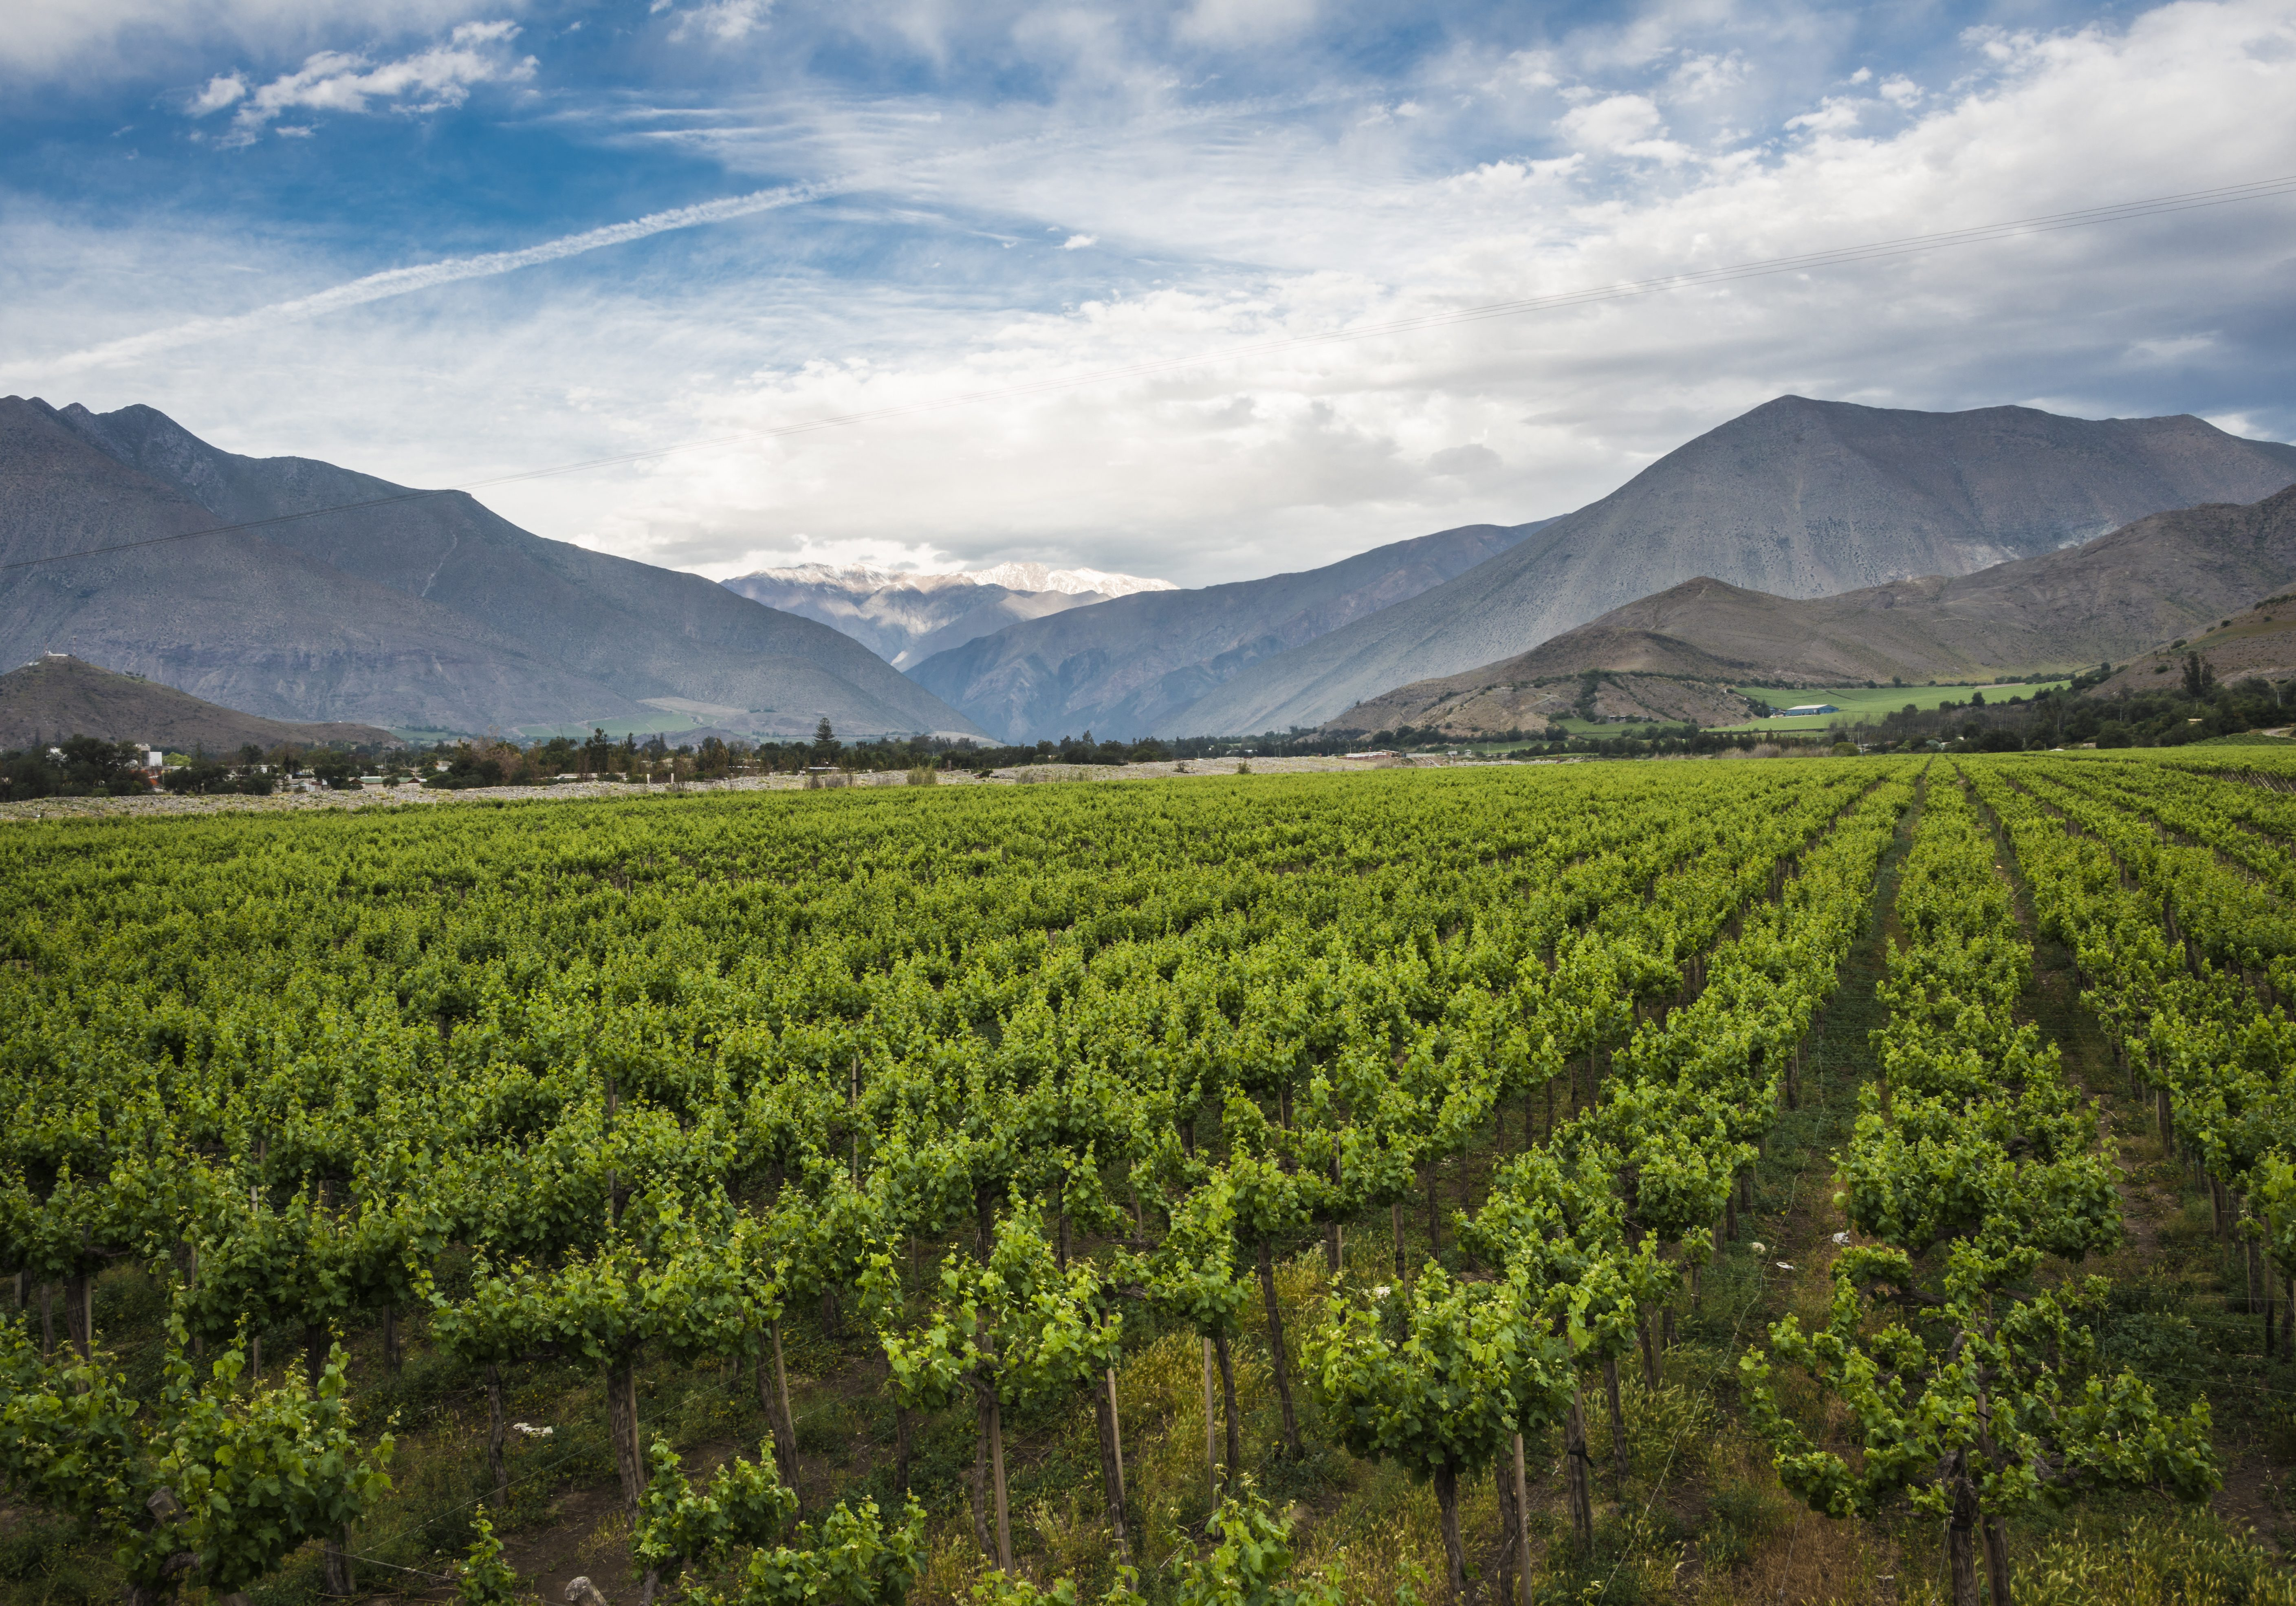 Chile, Andes, Wine